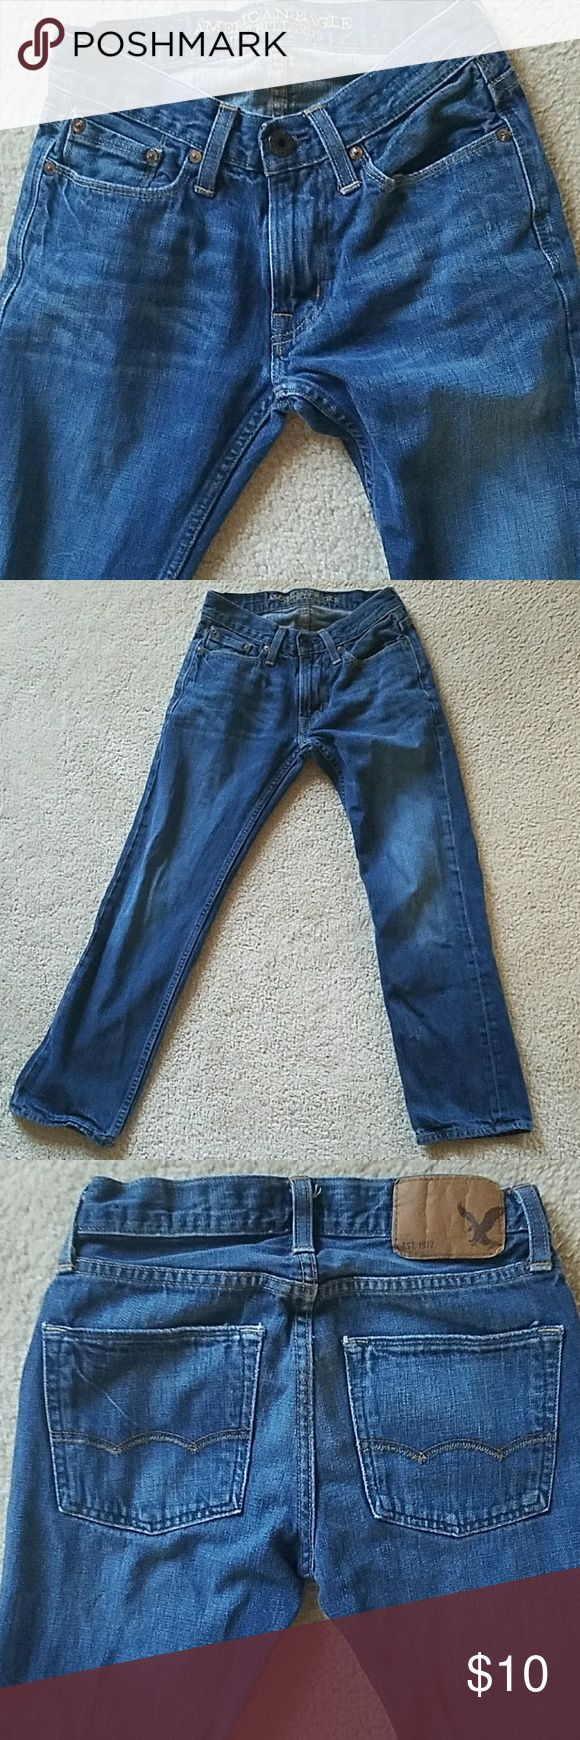 American Eagle jeans American Eagle Outfitters jeans American Eagle Outfitters Bottoms Jeans